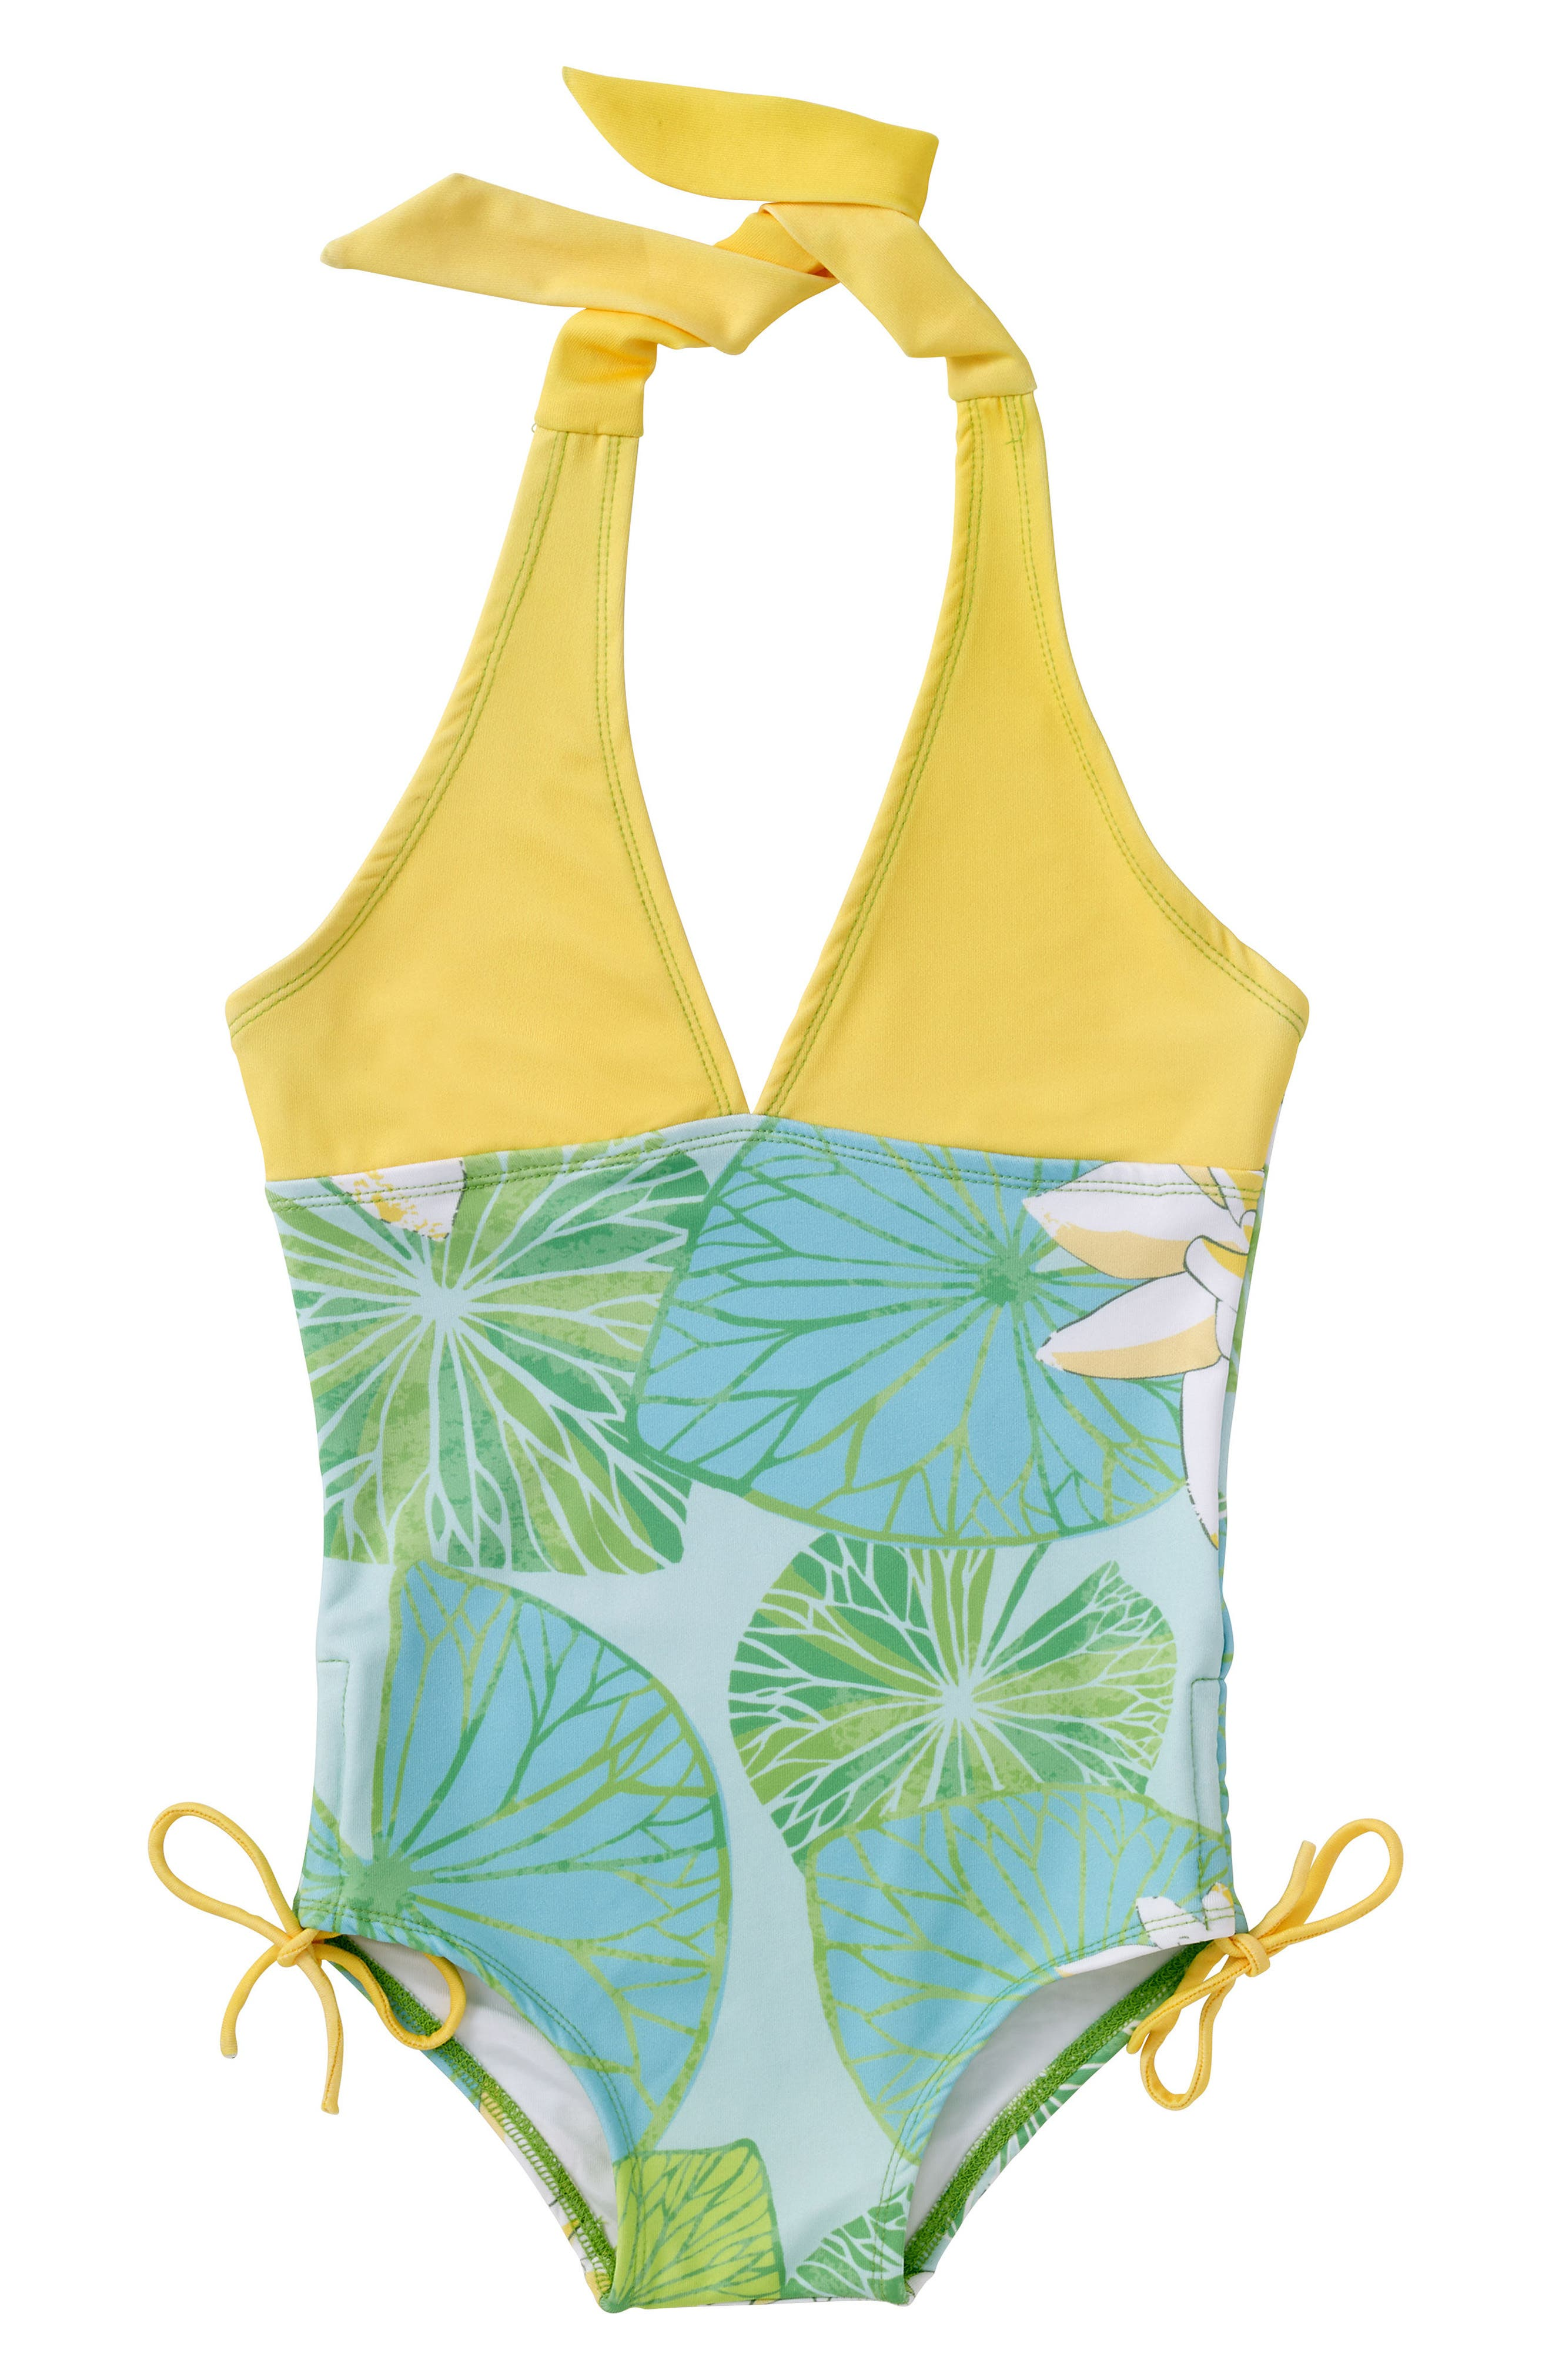 Alternate Image 1 Selected - Masalababy One-Piece Halter Swimsuit (Toddler Girls, Little Girls & Big Girls)